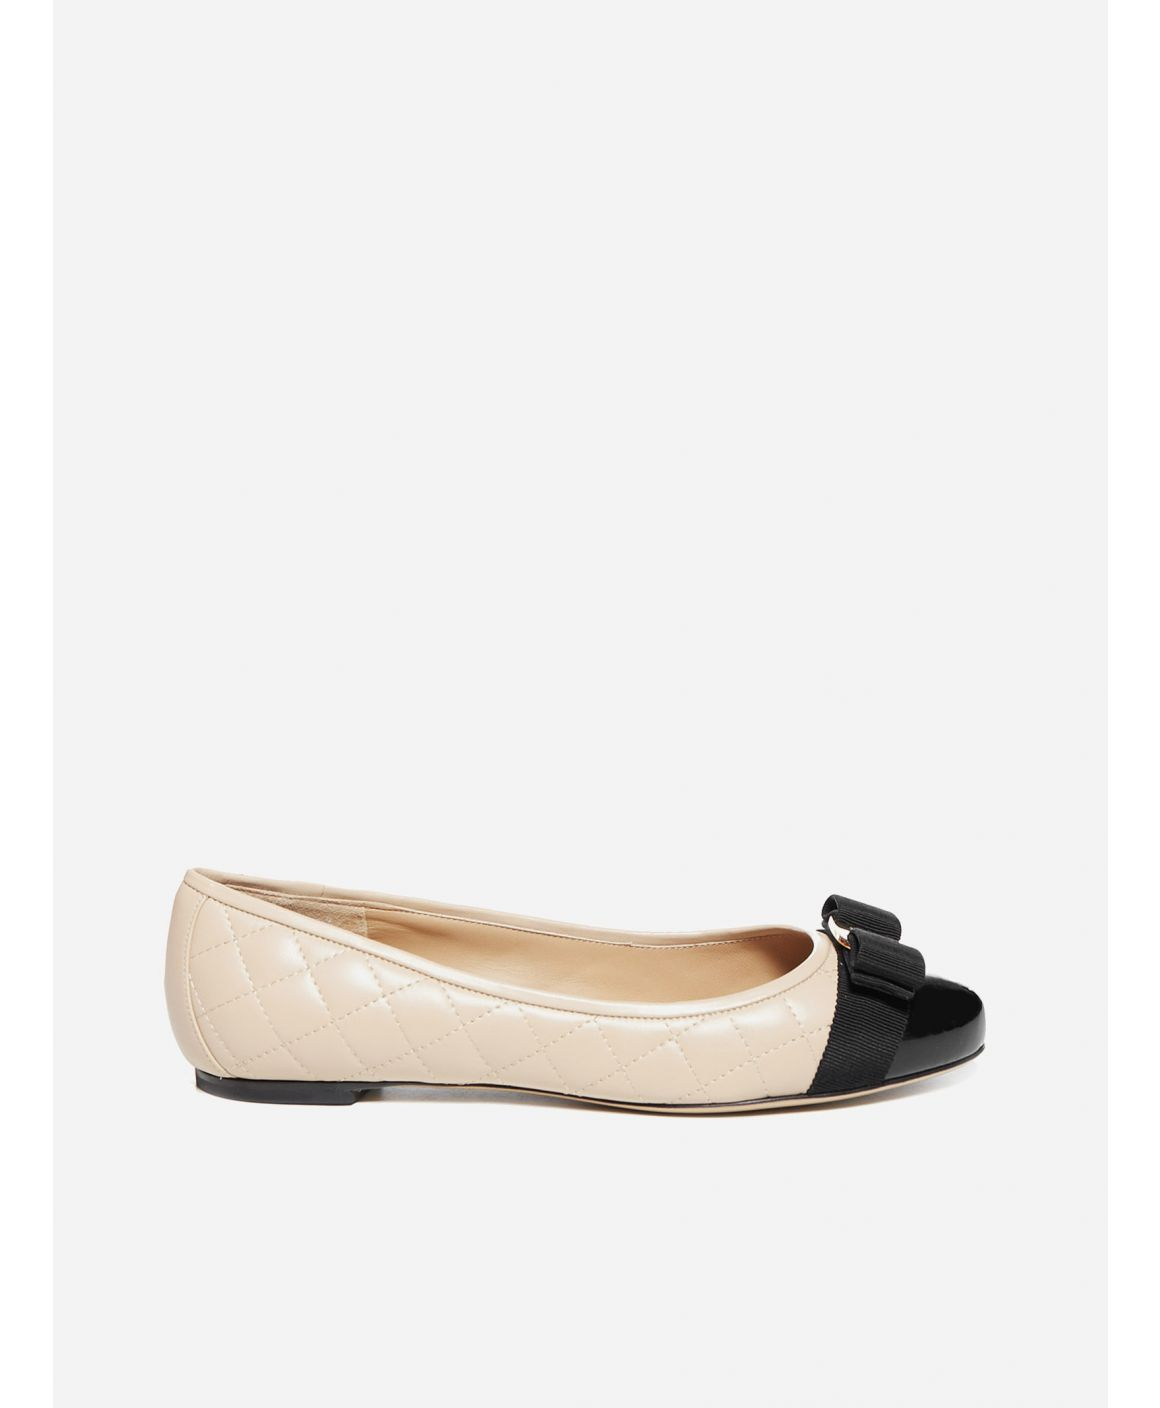 Varina quilted leather and patent leather ballet flats